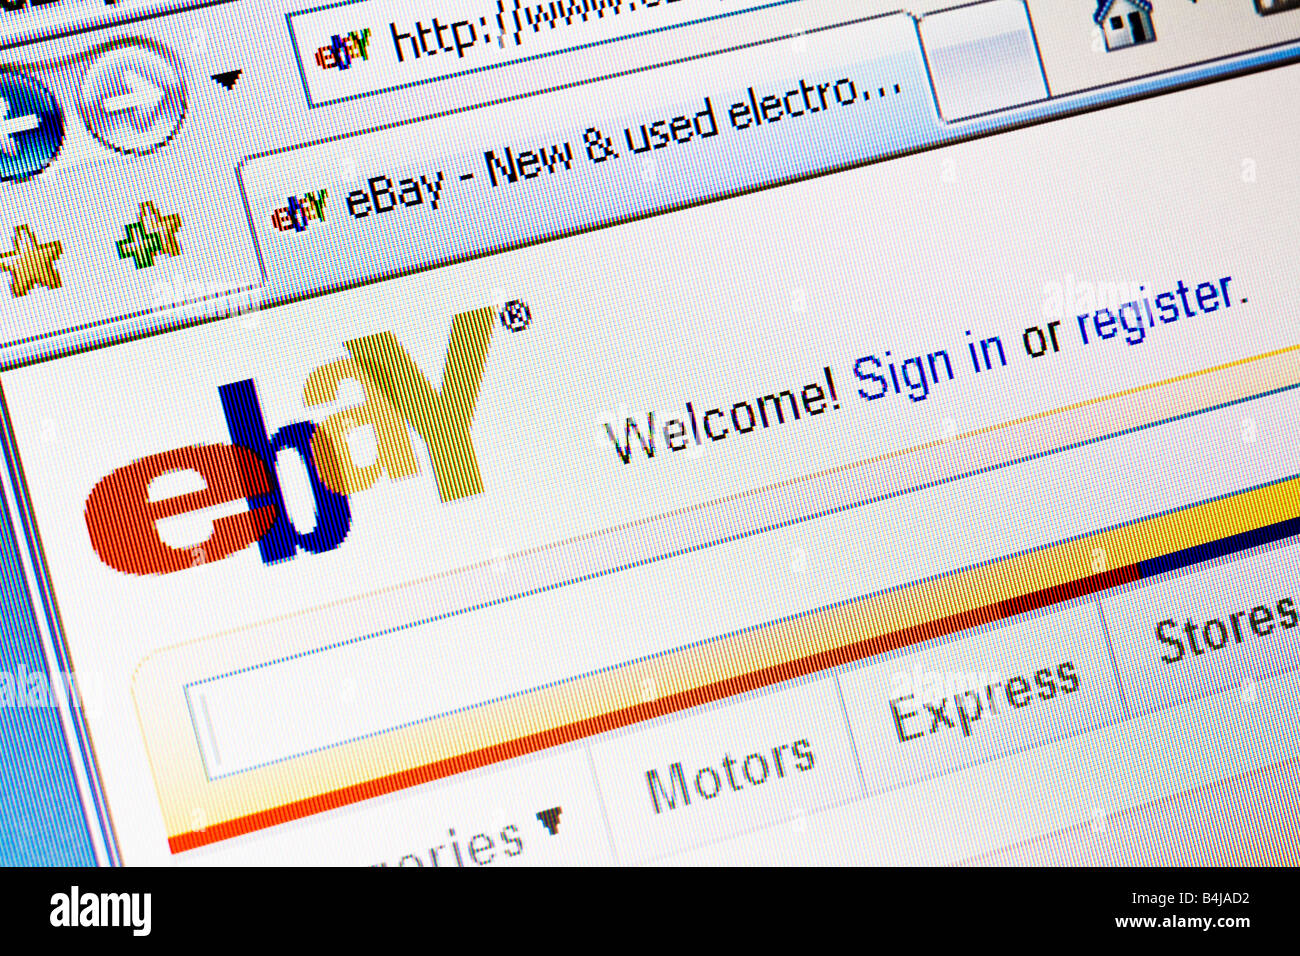 Ebay website splash screen and logo showing welcome message - Stock Image